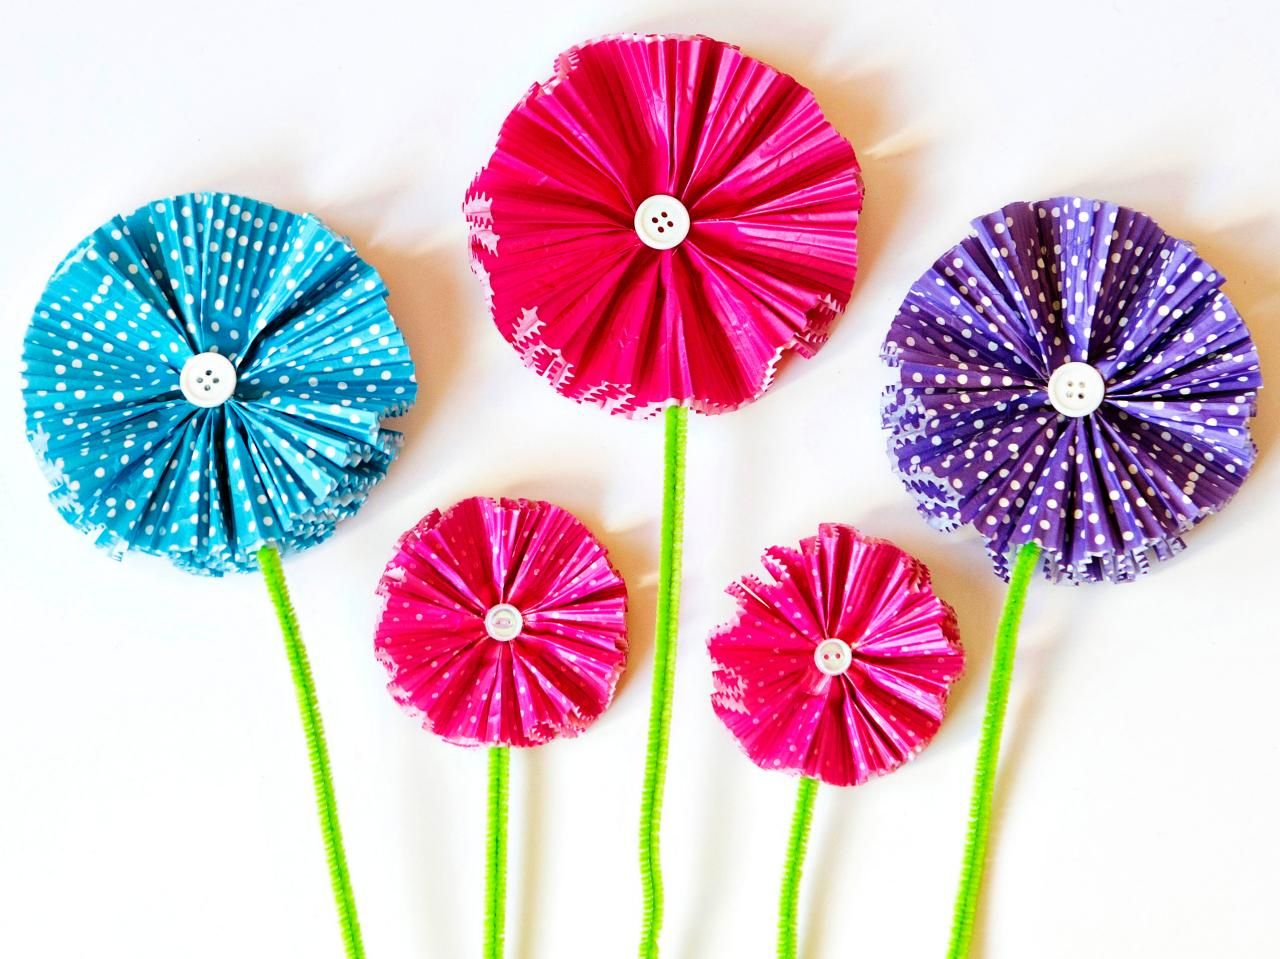 Paper Christmas Decorations With Instructions - Diy network has easy step by step instructions for colorful paper flowers fun